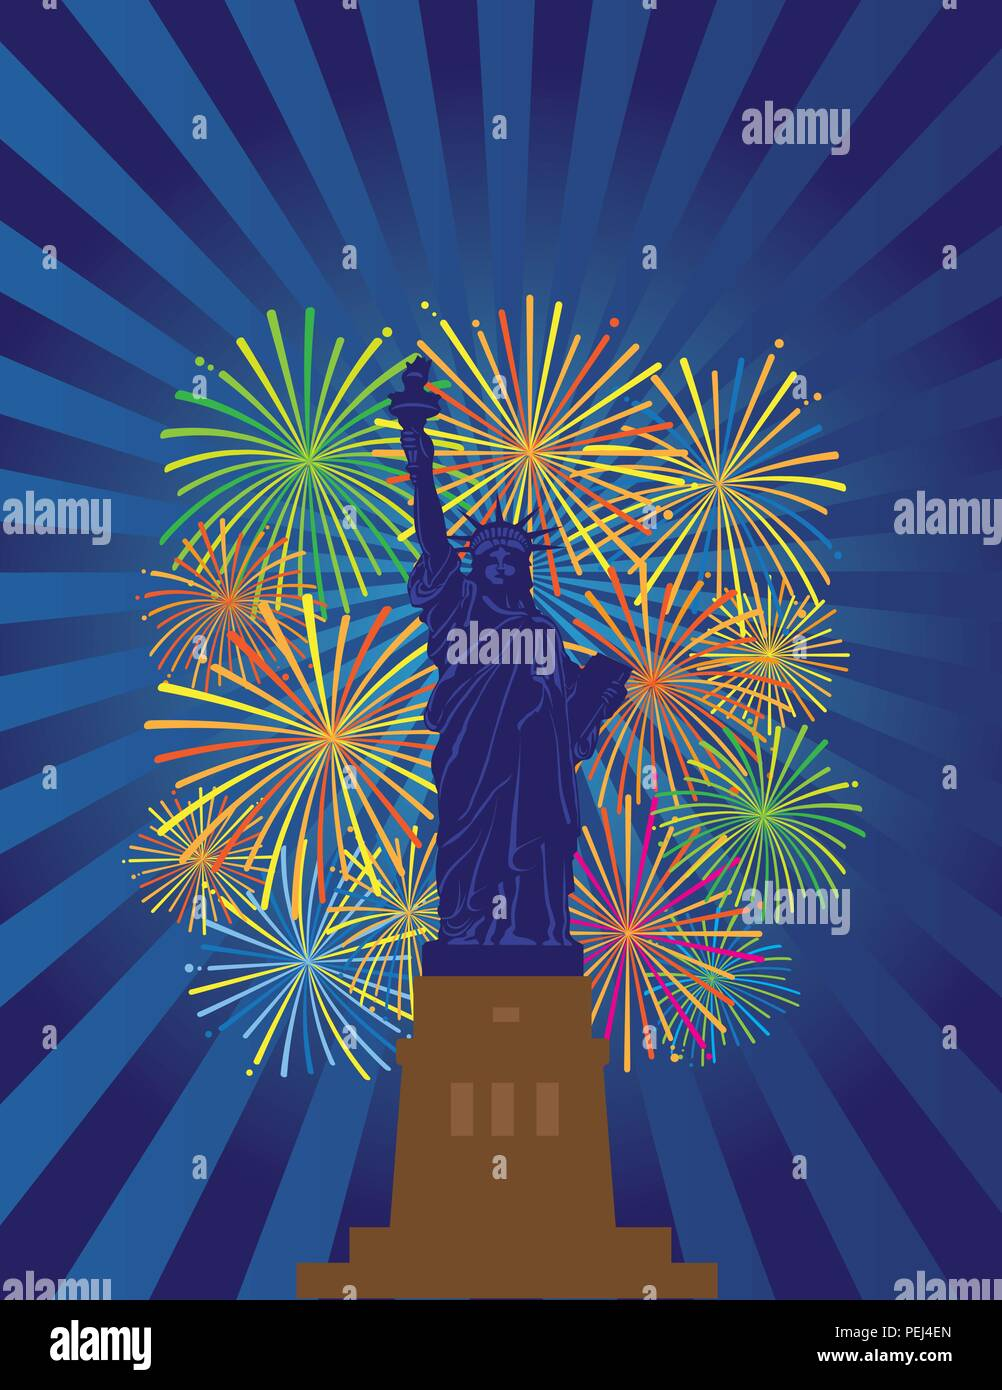 Statue of Liberty on Staten Island in New York City Fireworks Night Illustration - Stock Vector